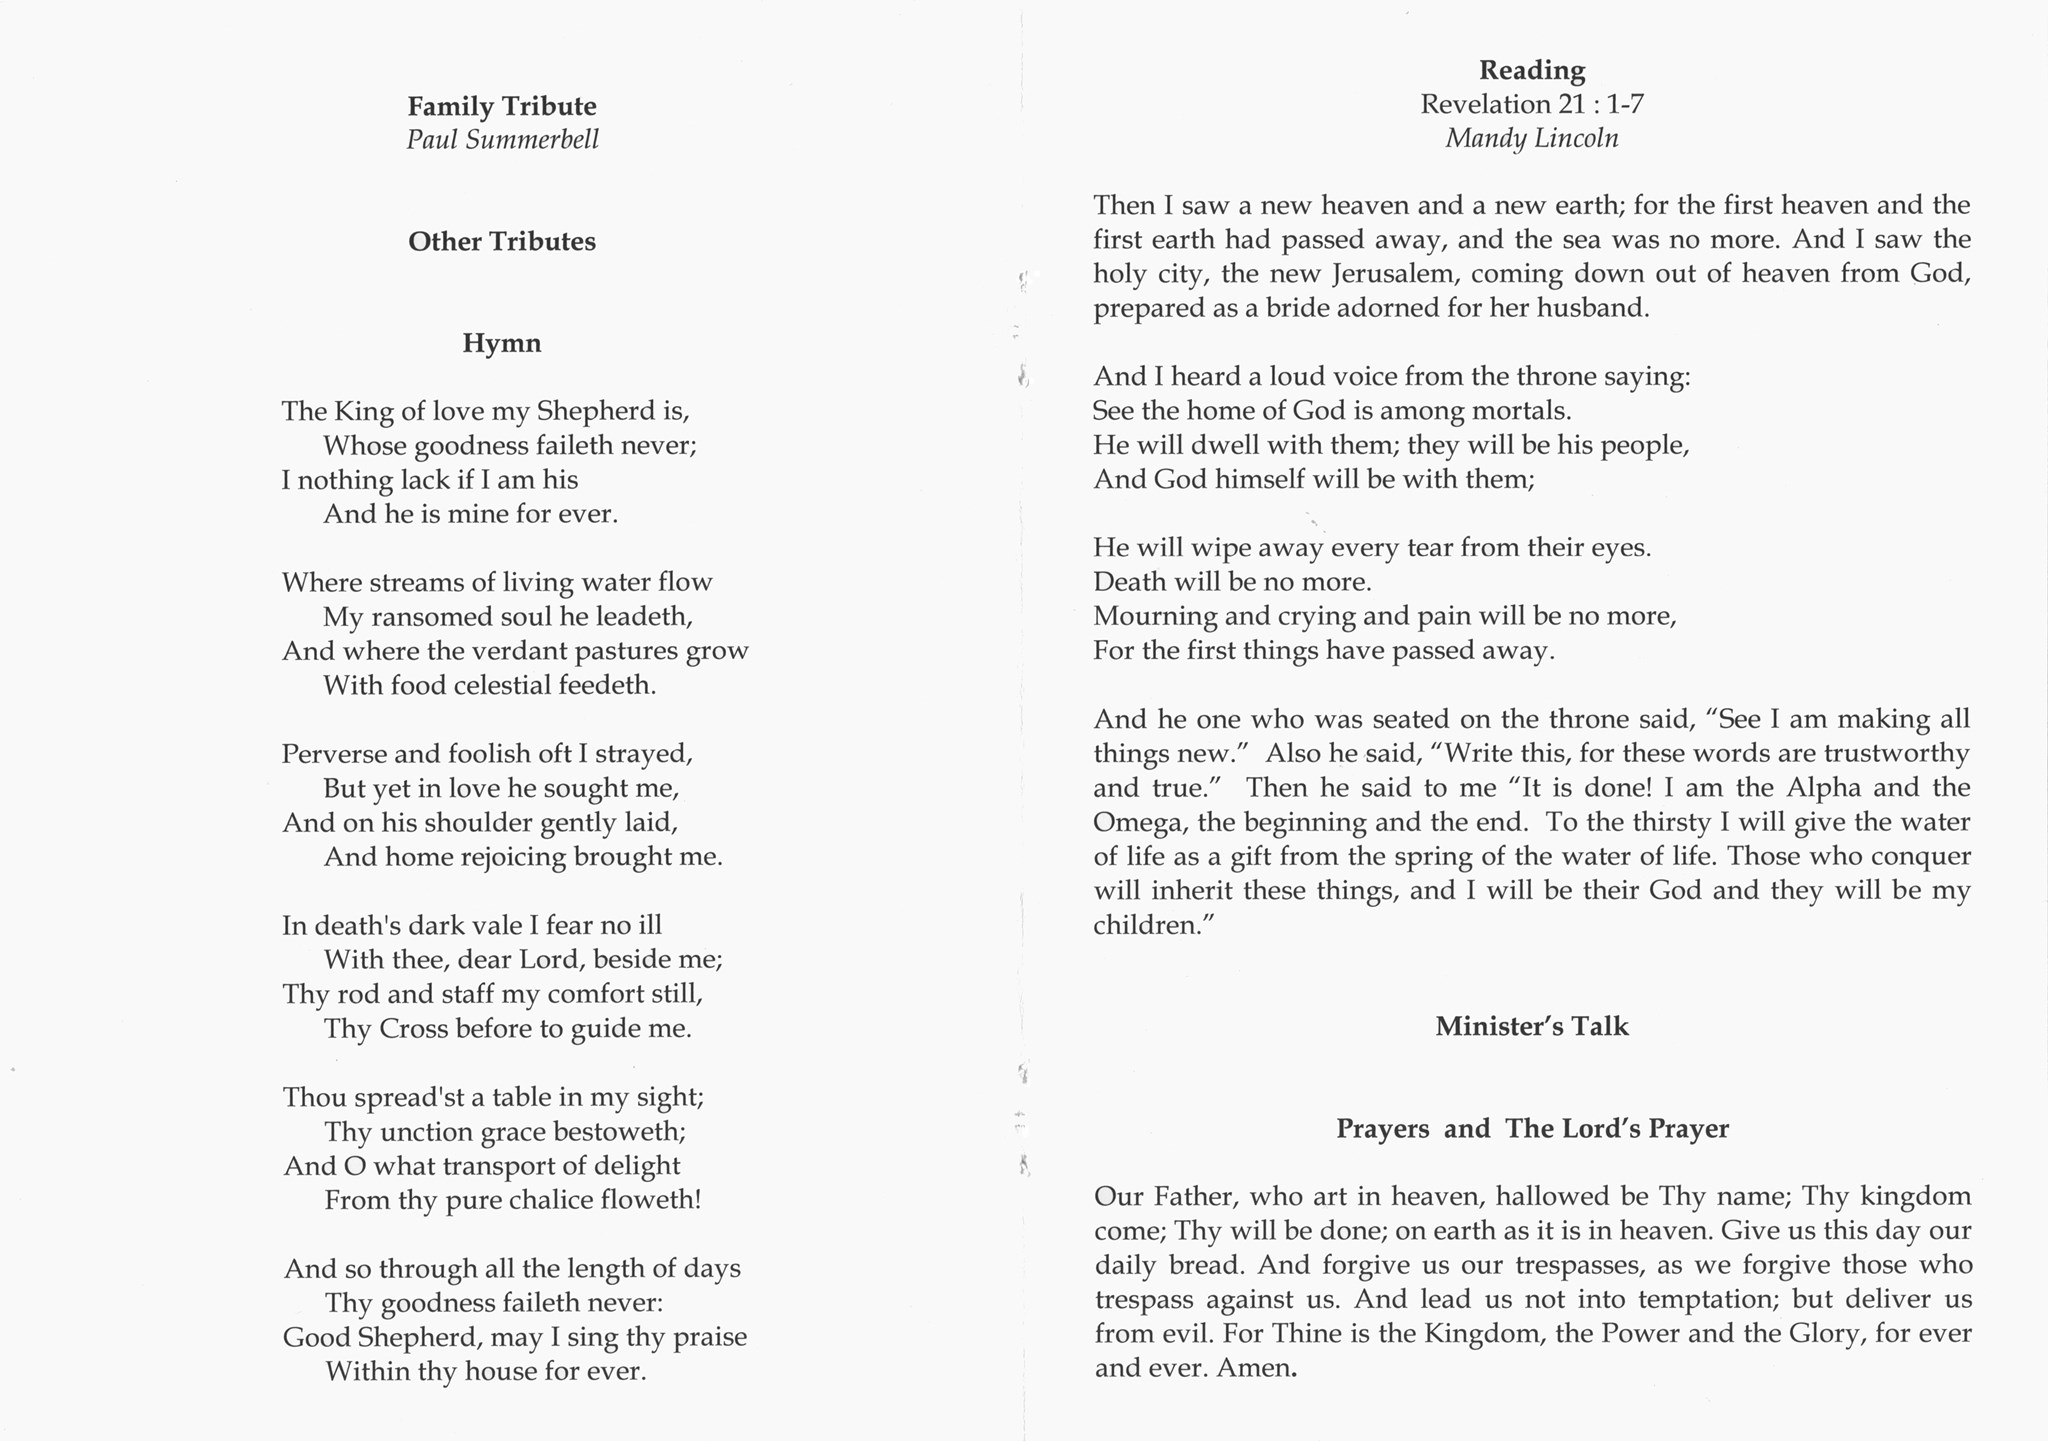 John Summerbell Order of Service pages 4 and 5